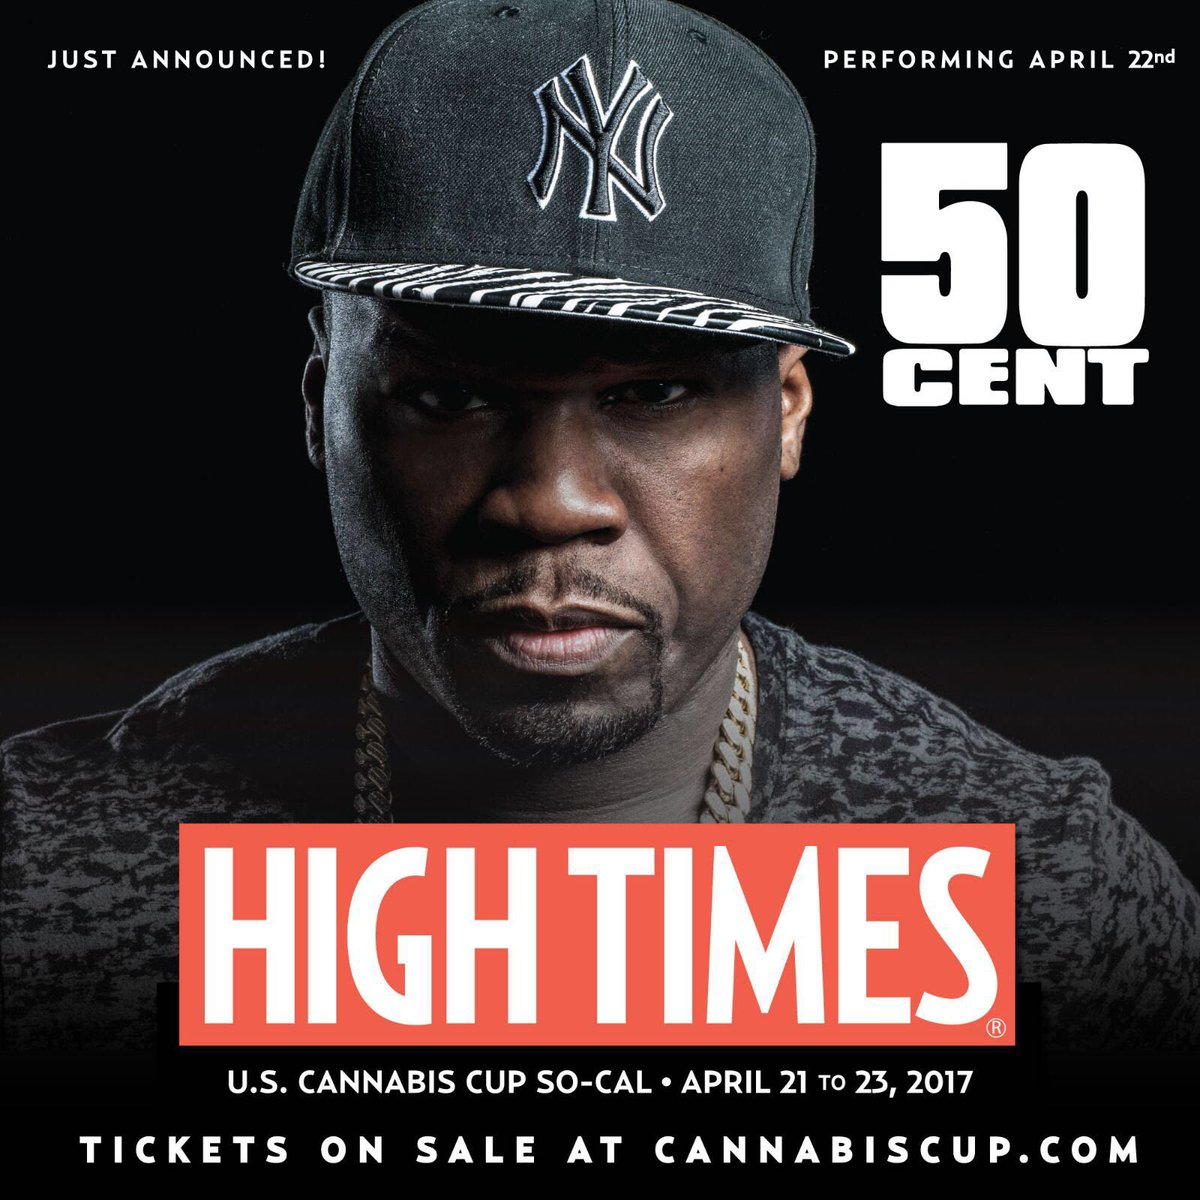 Tomorrow Cali it's going down don't miss this https://t.co/dhWhD72uYE